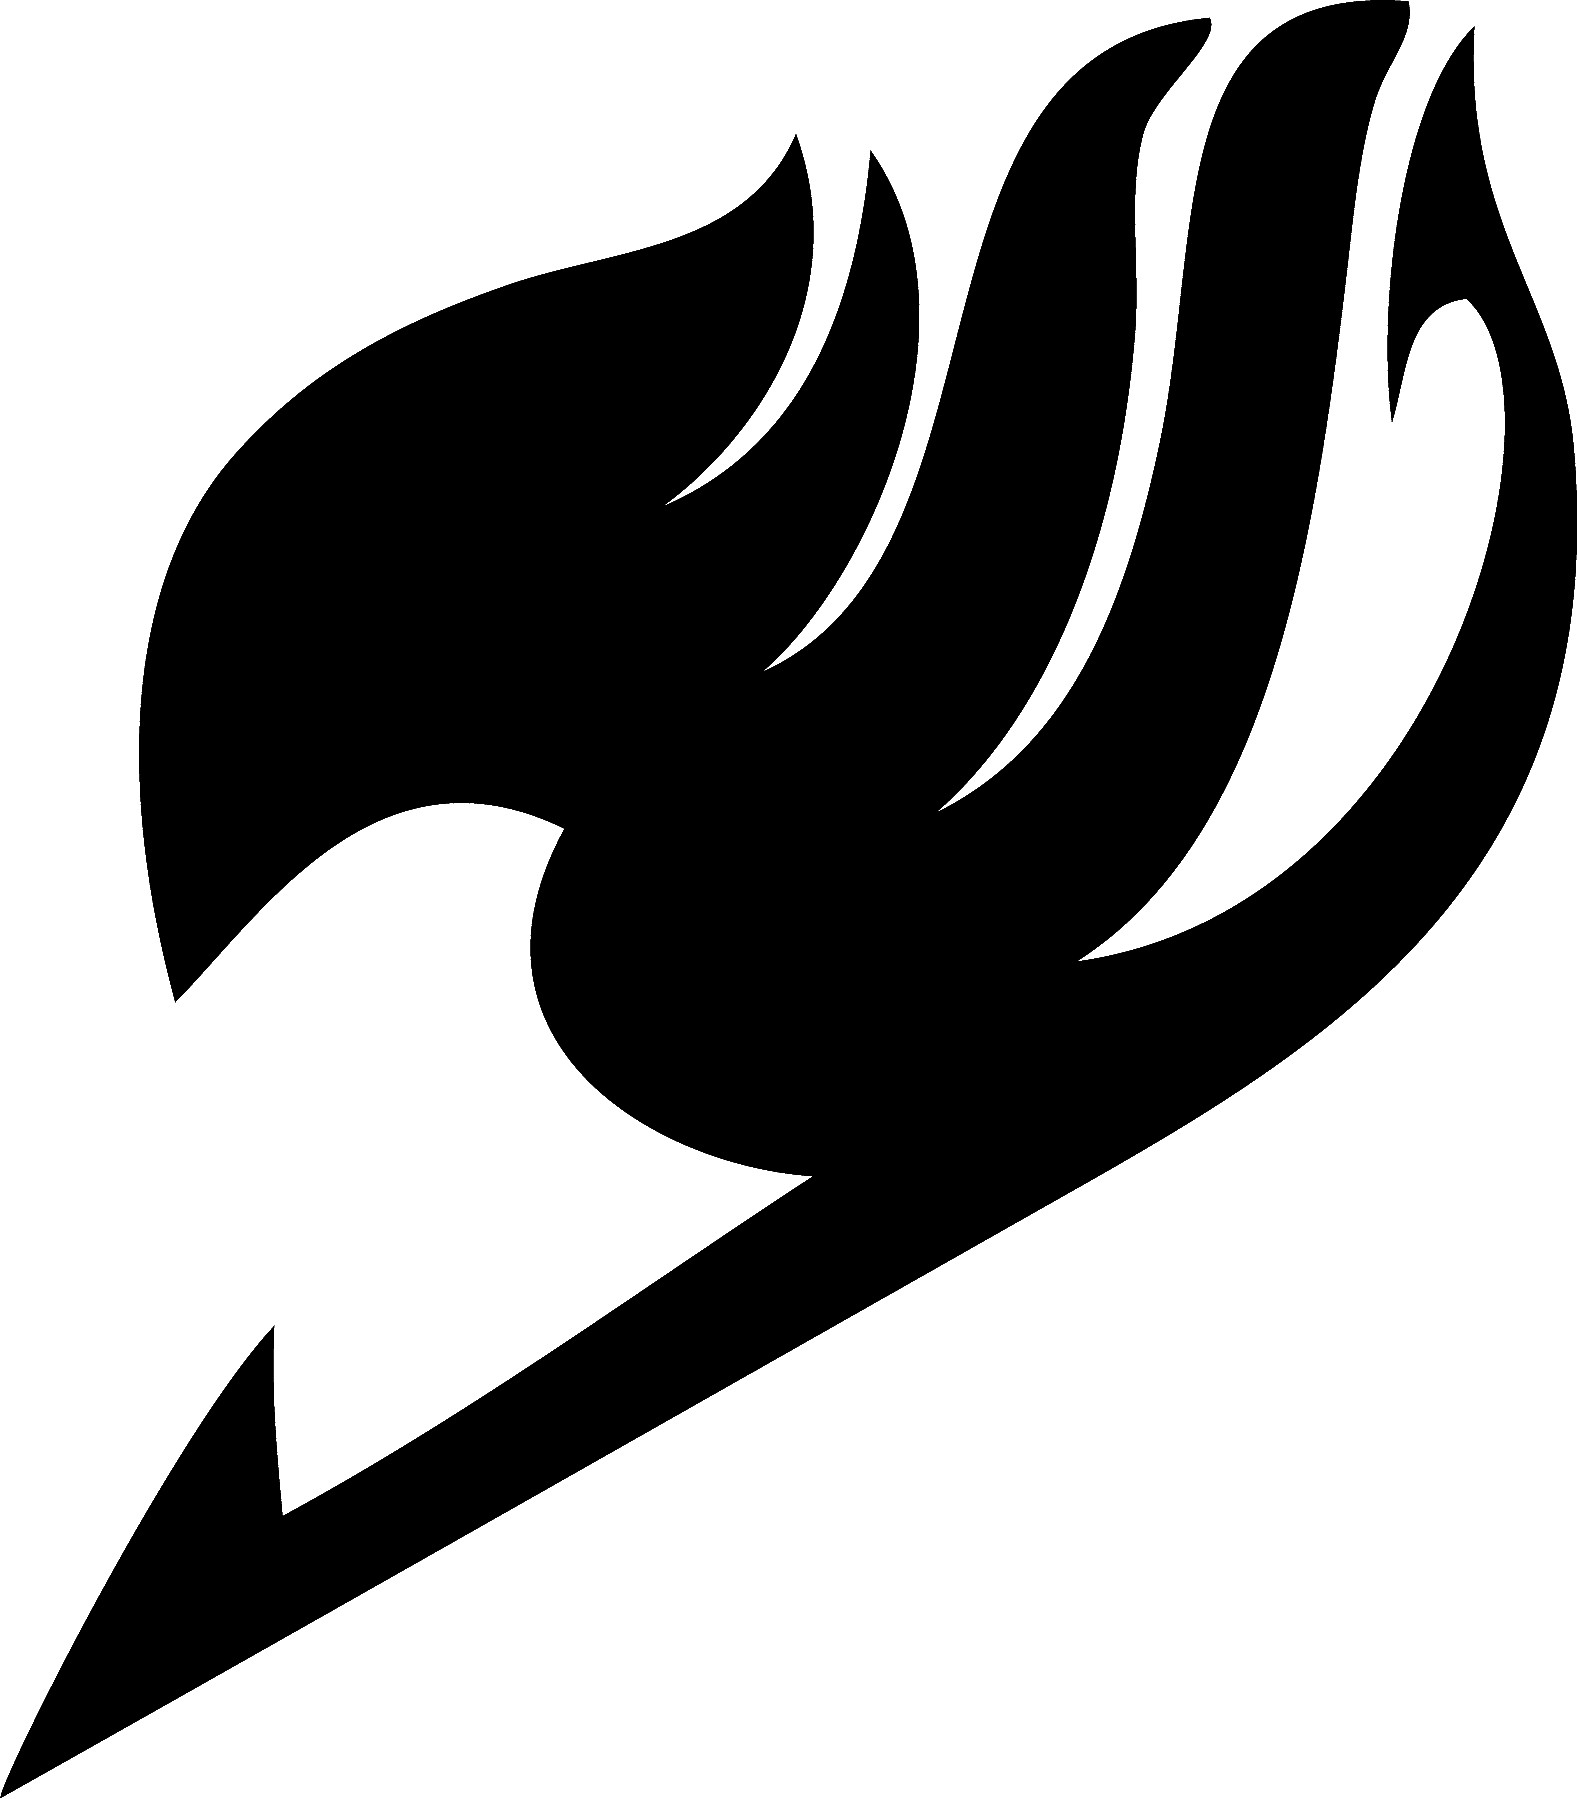 file:fairy tail logo - wikimedia commons